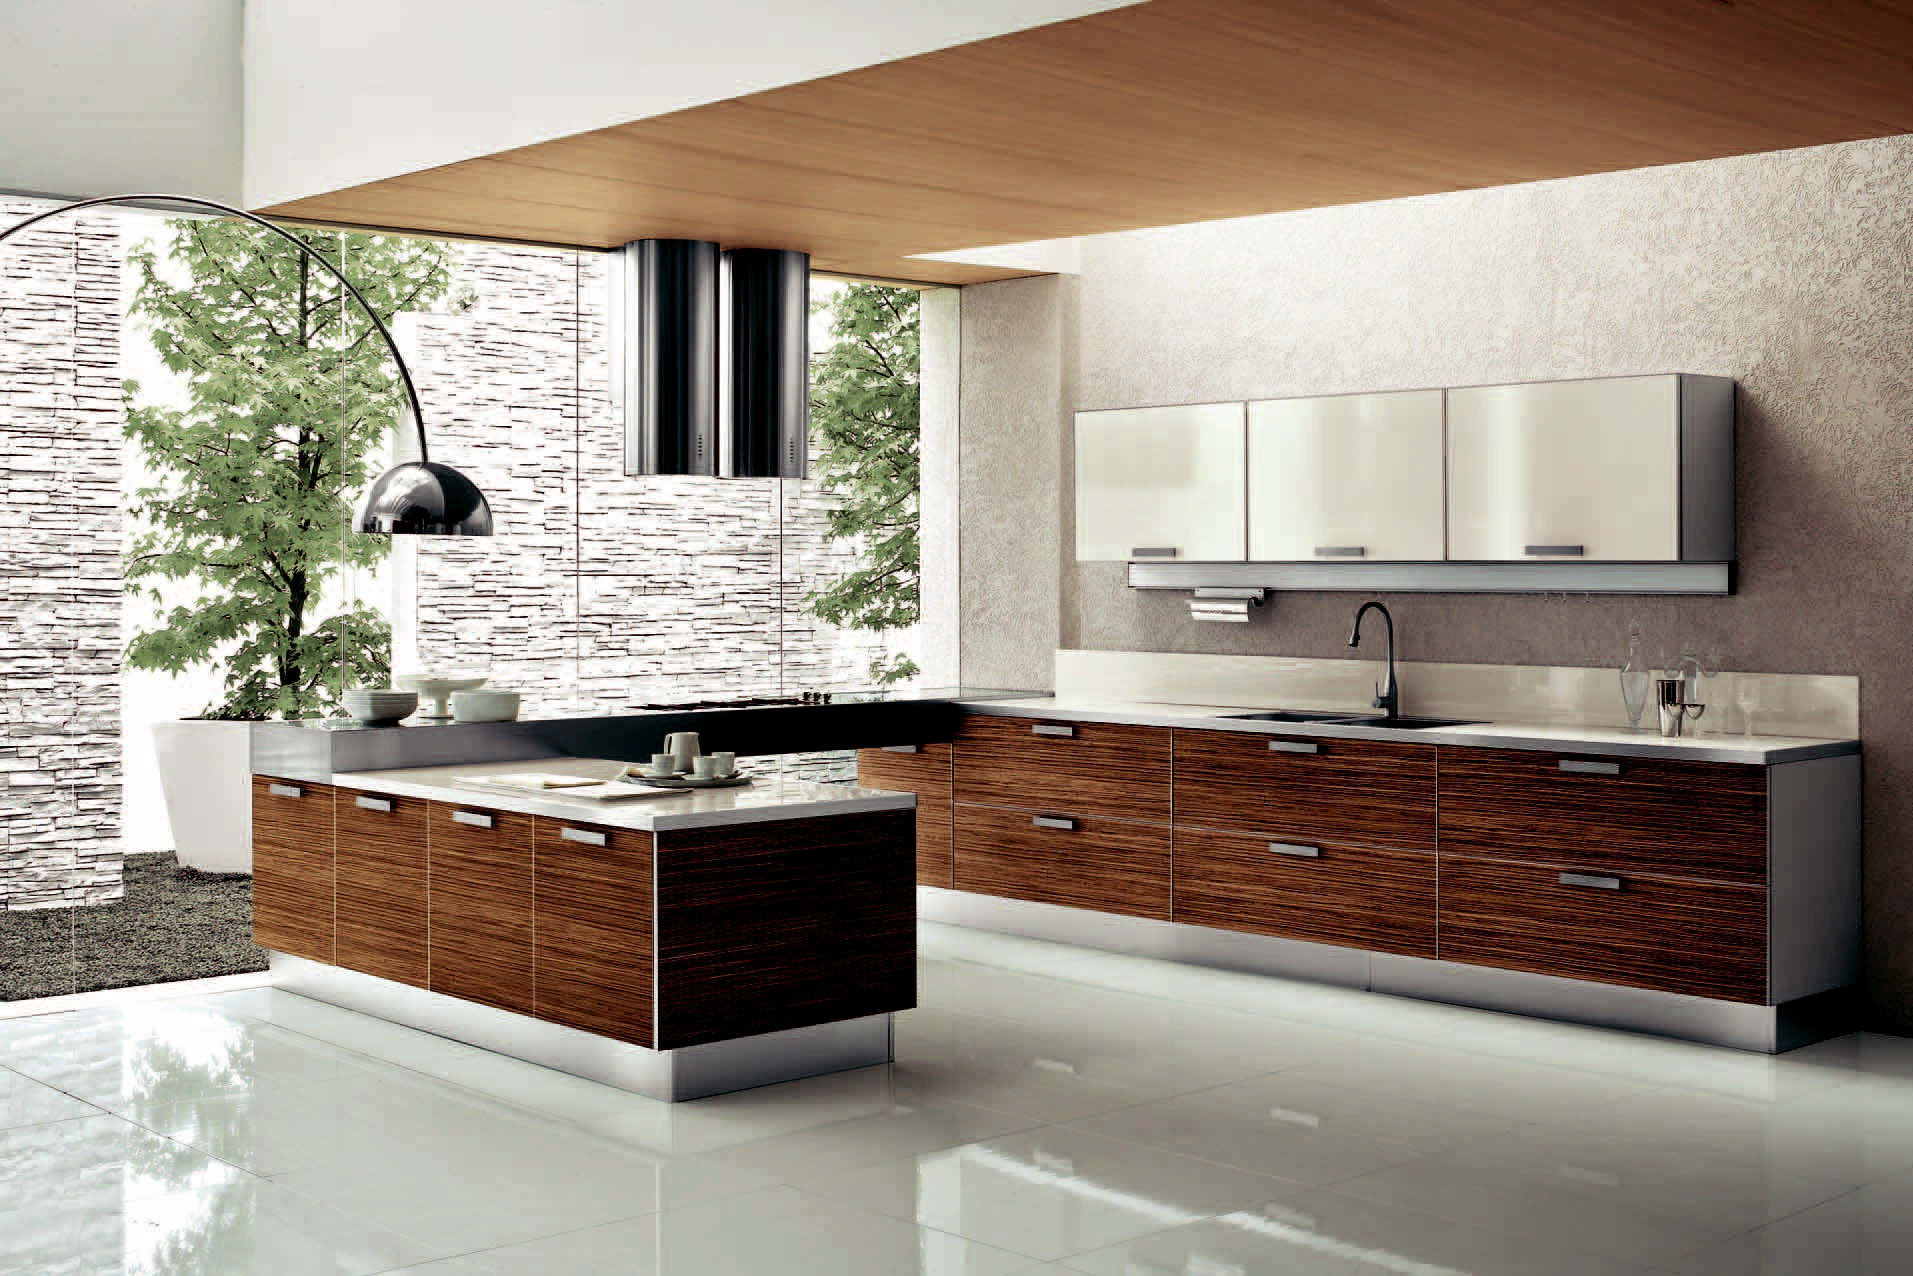 Beyond kitchens affordable kitchen cupboards cape town for Modern kitchen plan